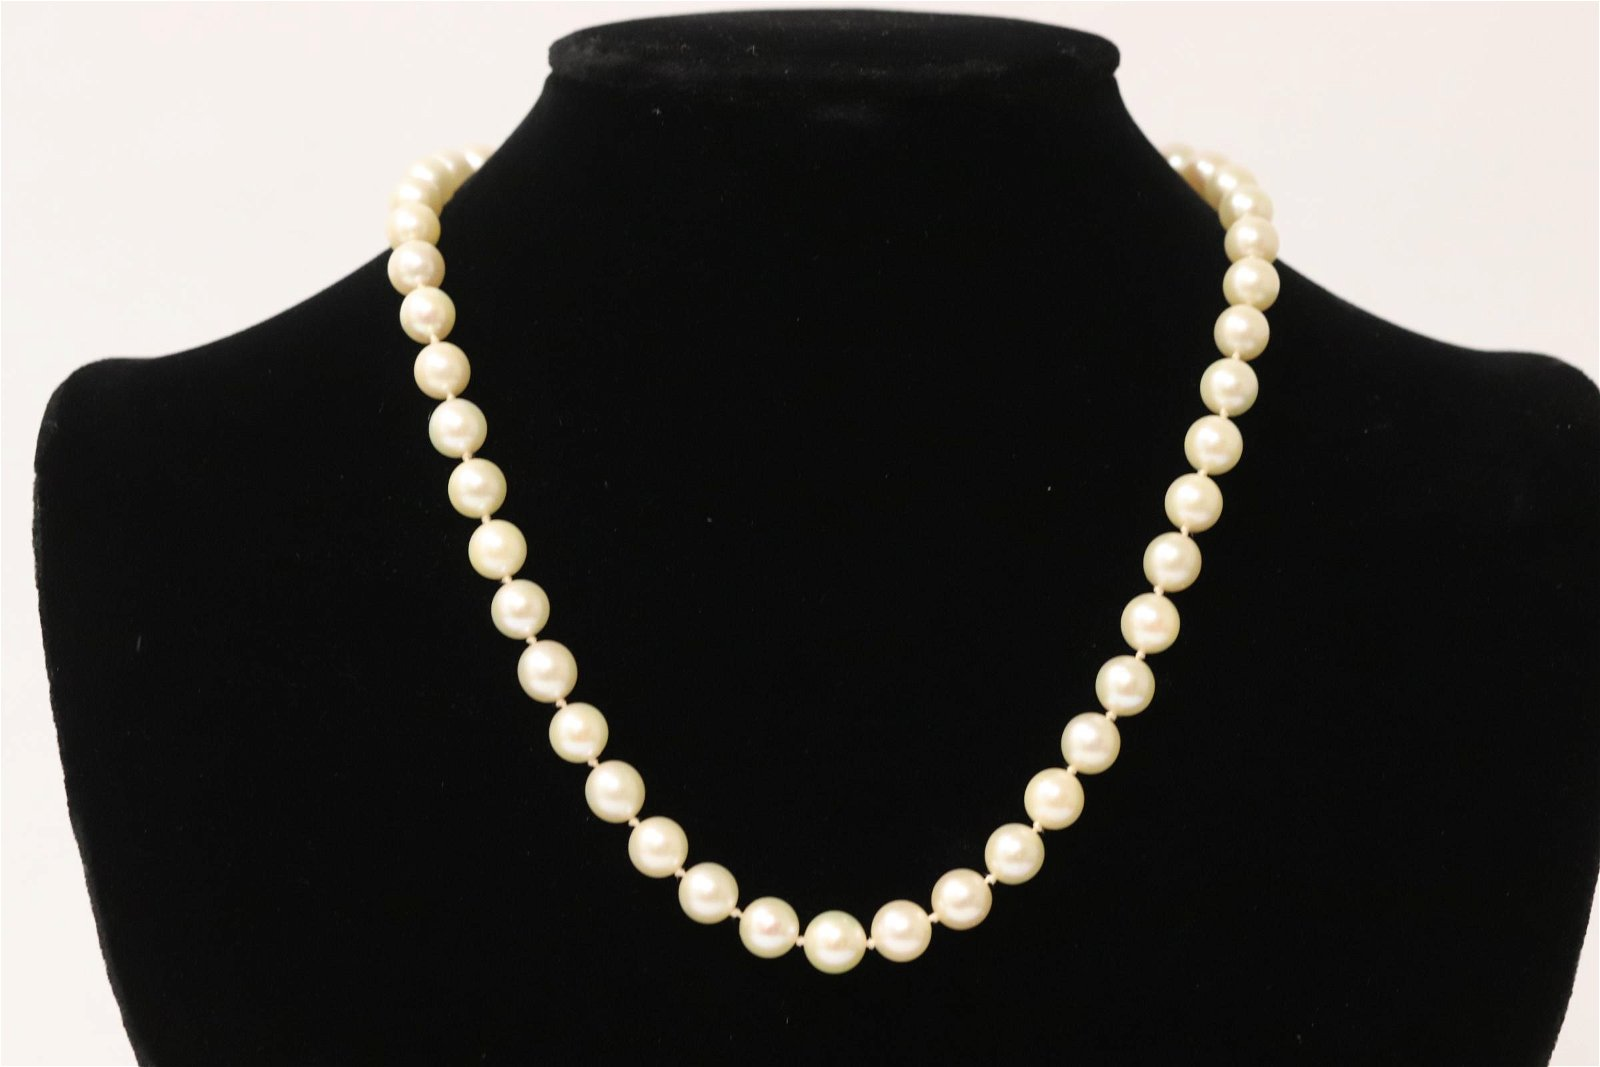 cultured pearl necklace with 14K W/G clasp